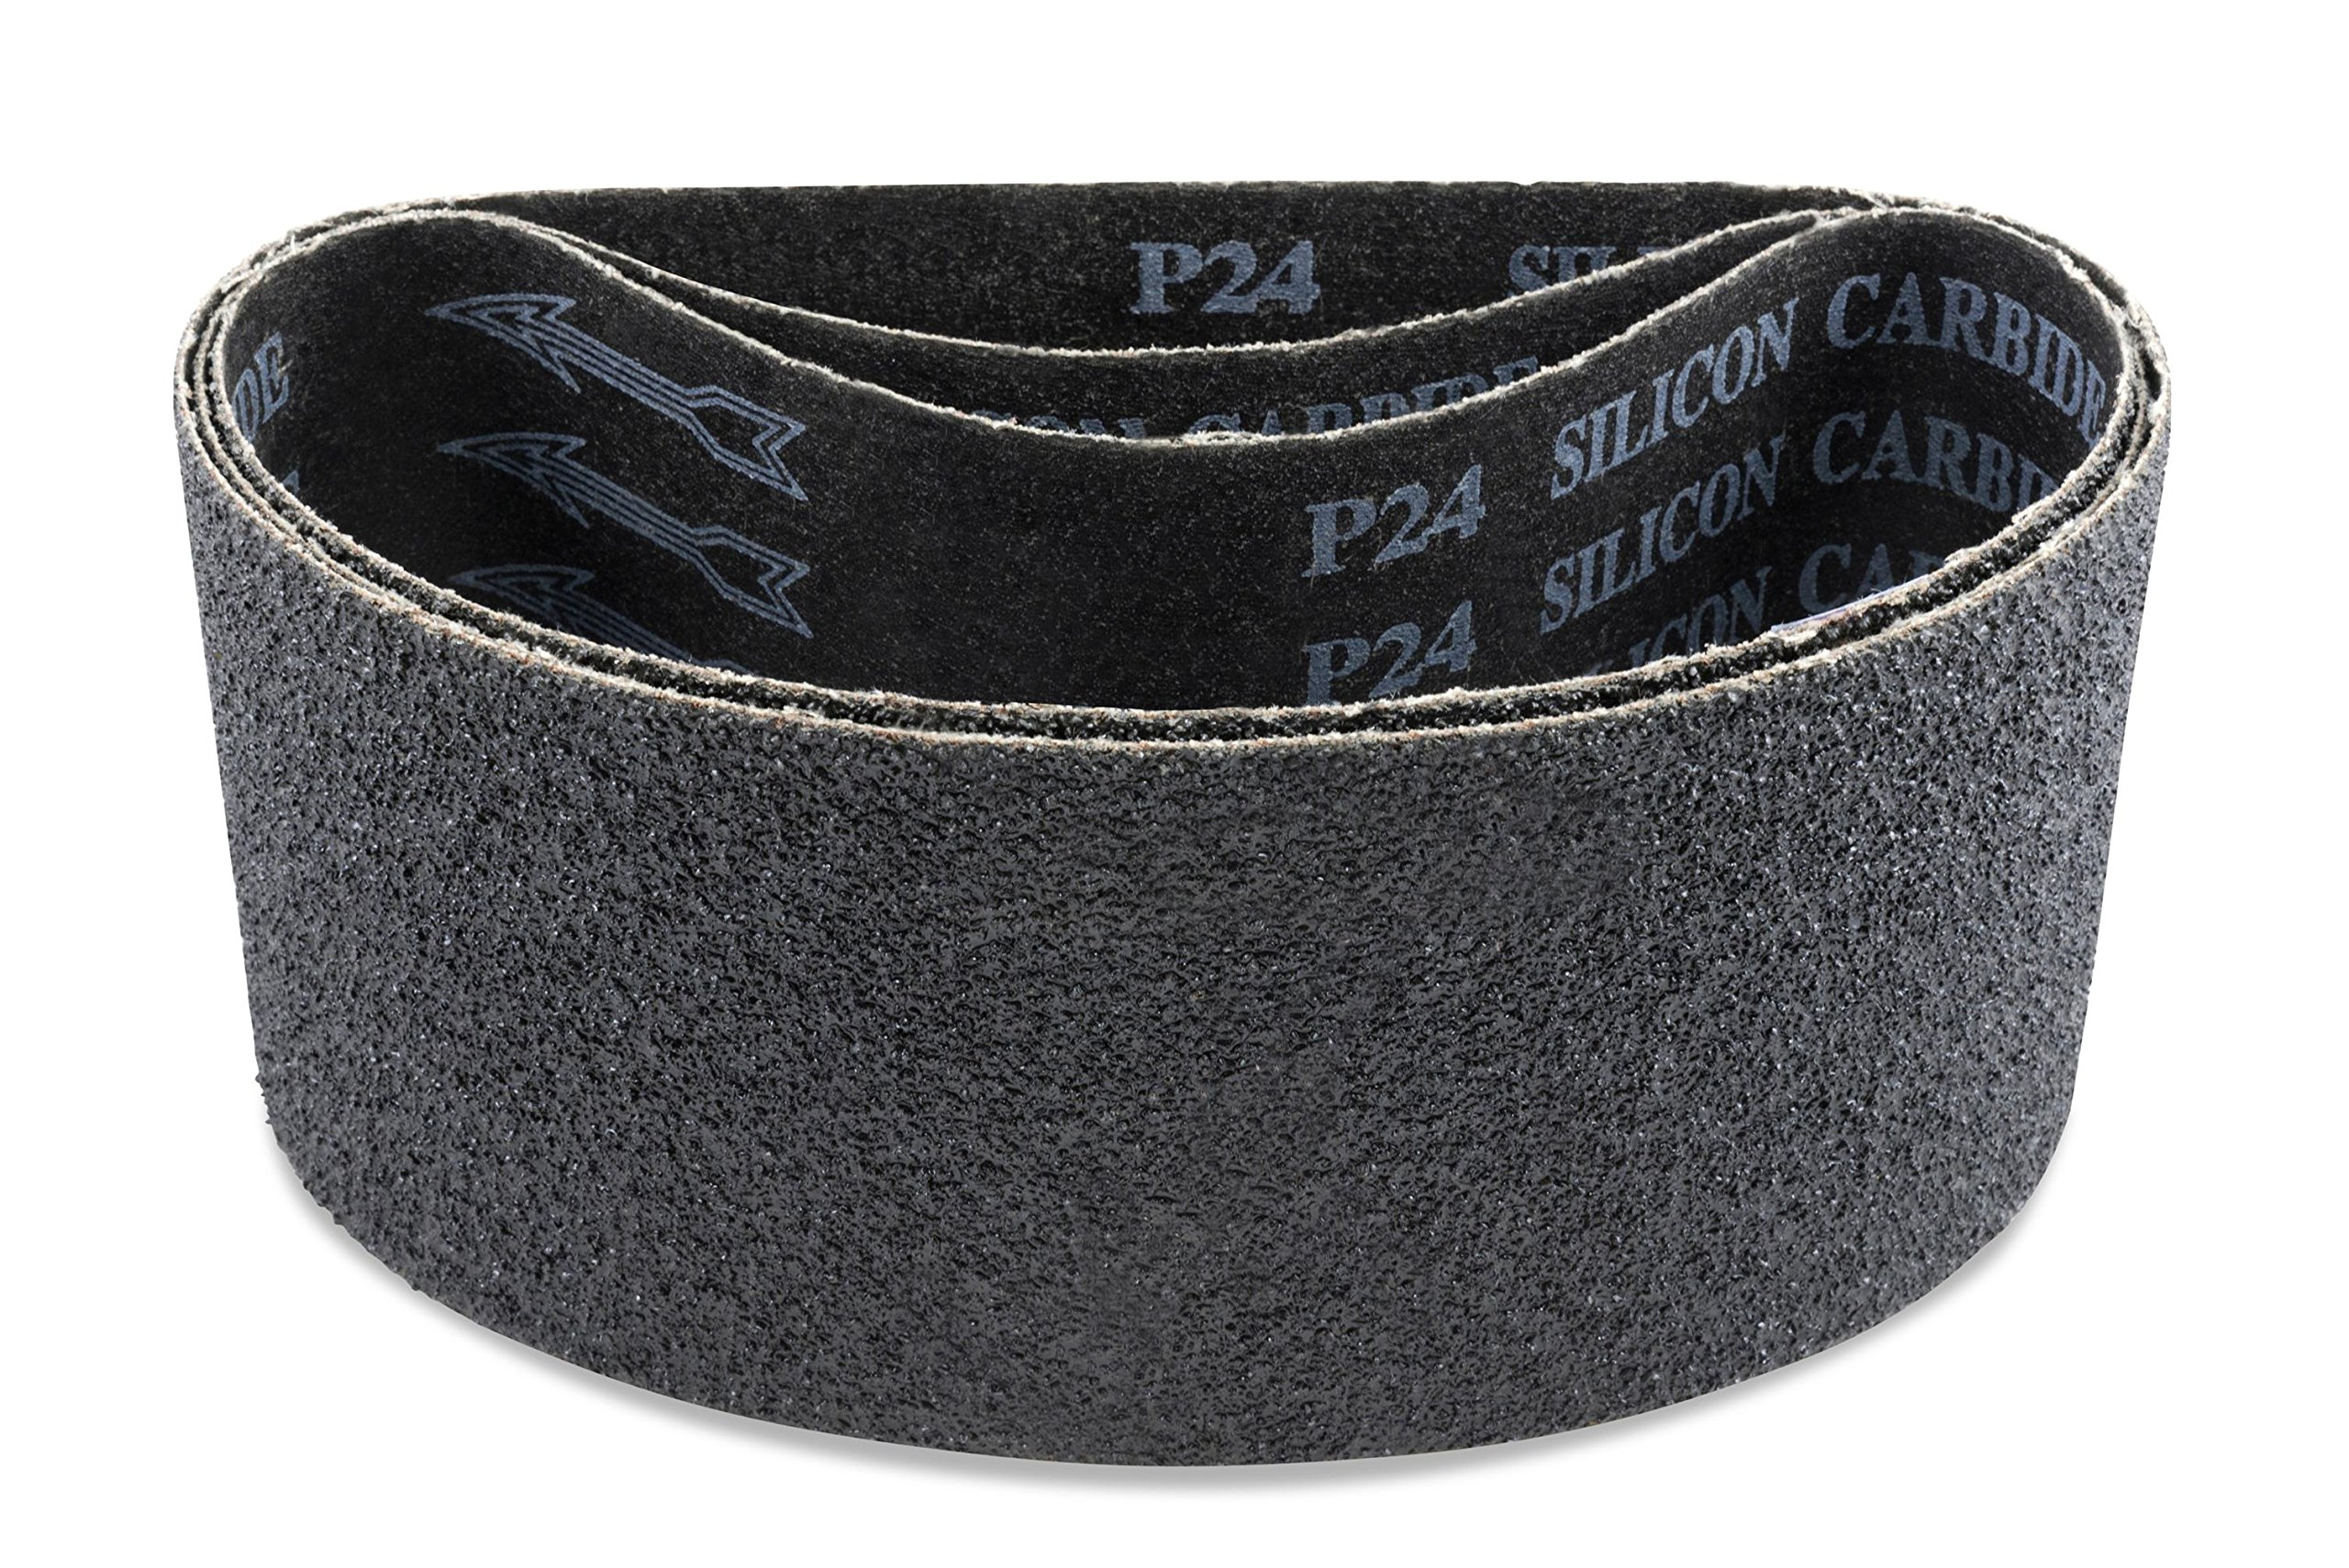 4 X 21 Inch Silicon Carbide Sanding Belts, 3 Pack by Red Label Abrasives